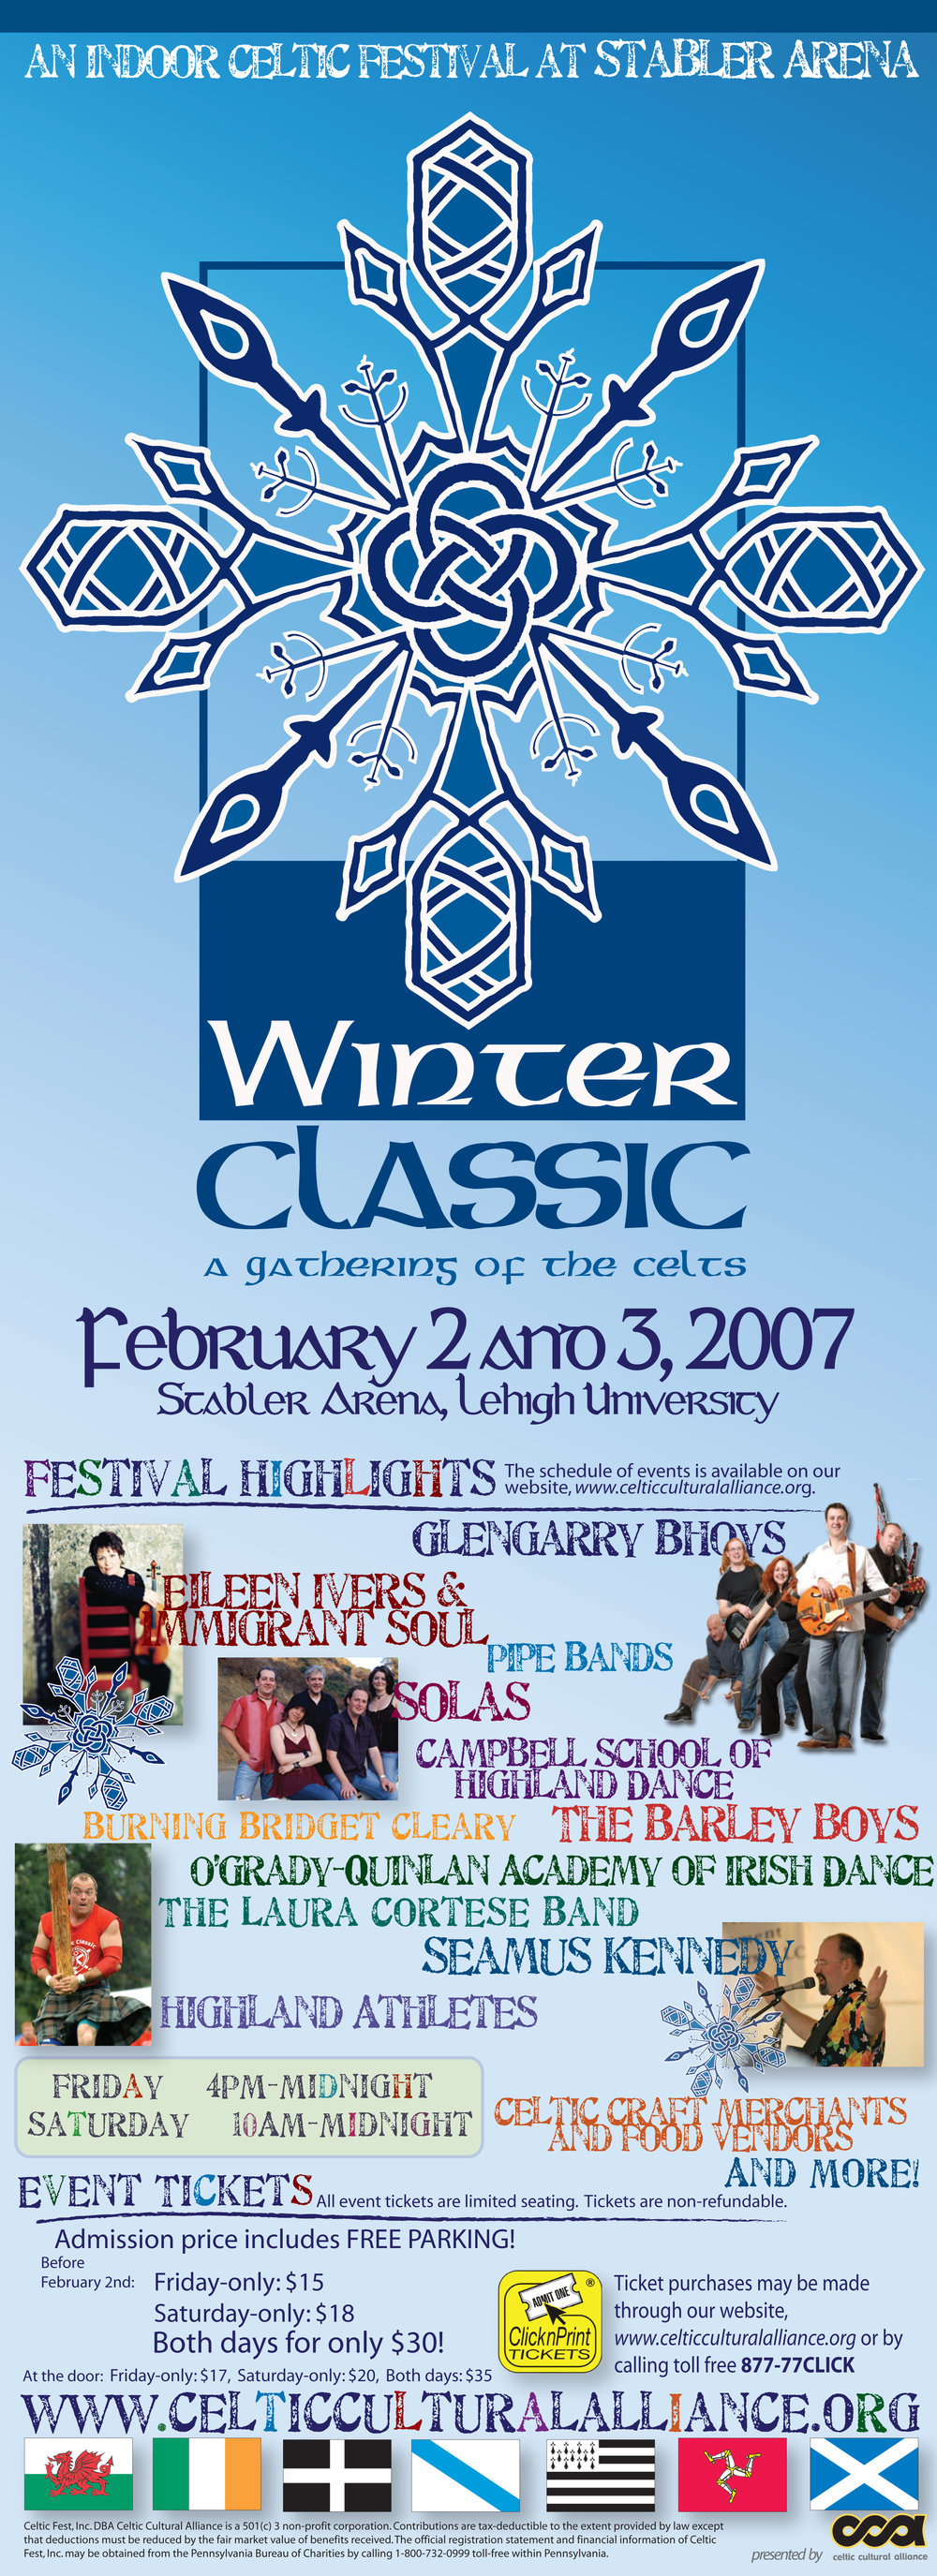 WINTER CLASSIC  • 12.5 x 8.8 MAILER + POSTER  CLIENT: Celtic Cultural Alliance PLACEMENT: Piece was both mailed out to Celtic Classic's 10,000+ mailing list and used as a poster for hanging around town. WORK: Adobe illustrator. Winter Classic Logo by Kat Moyer Media + Design